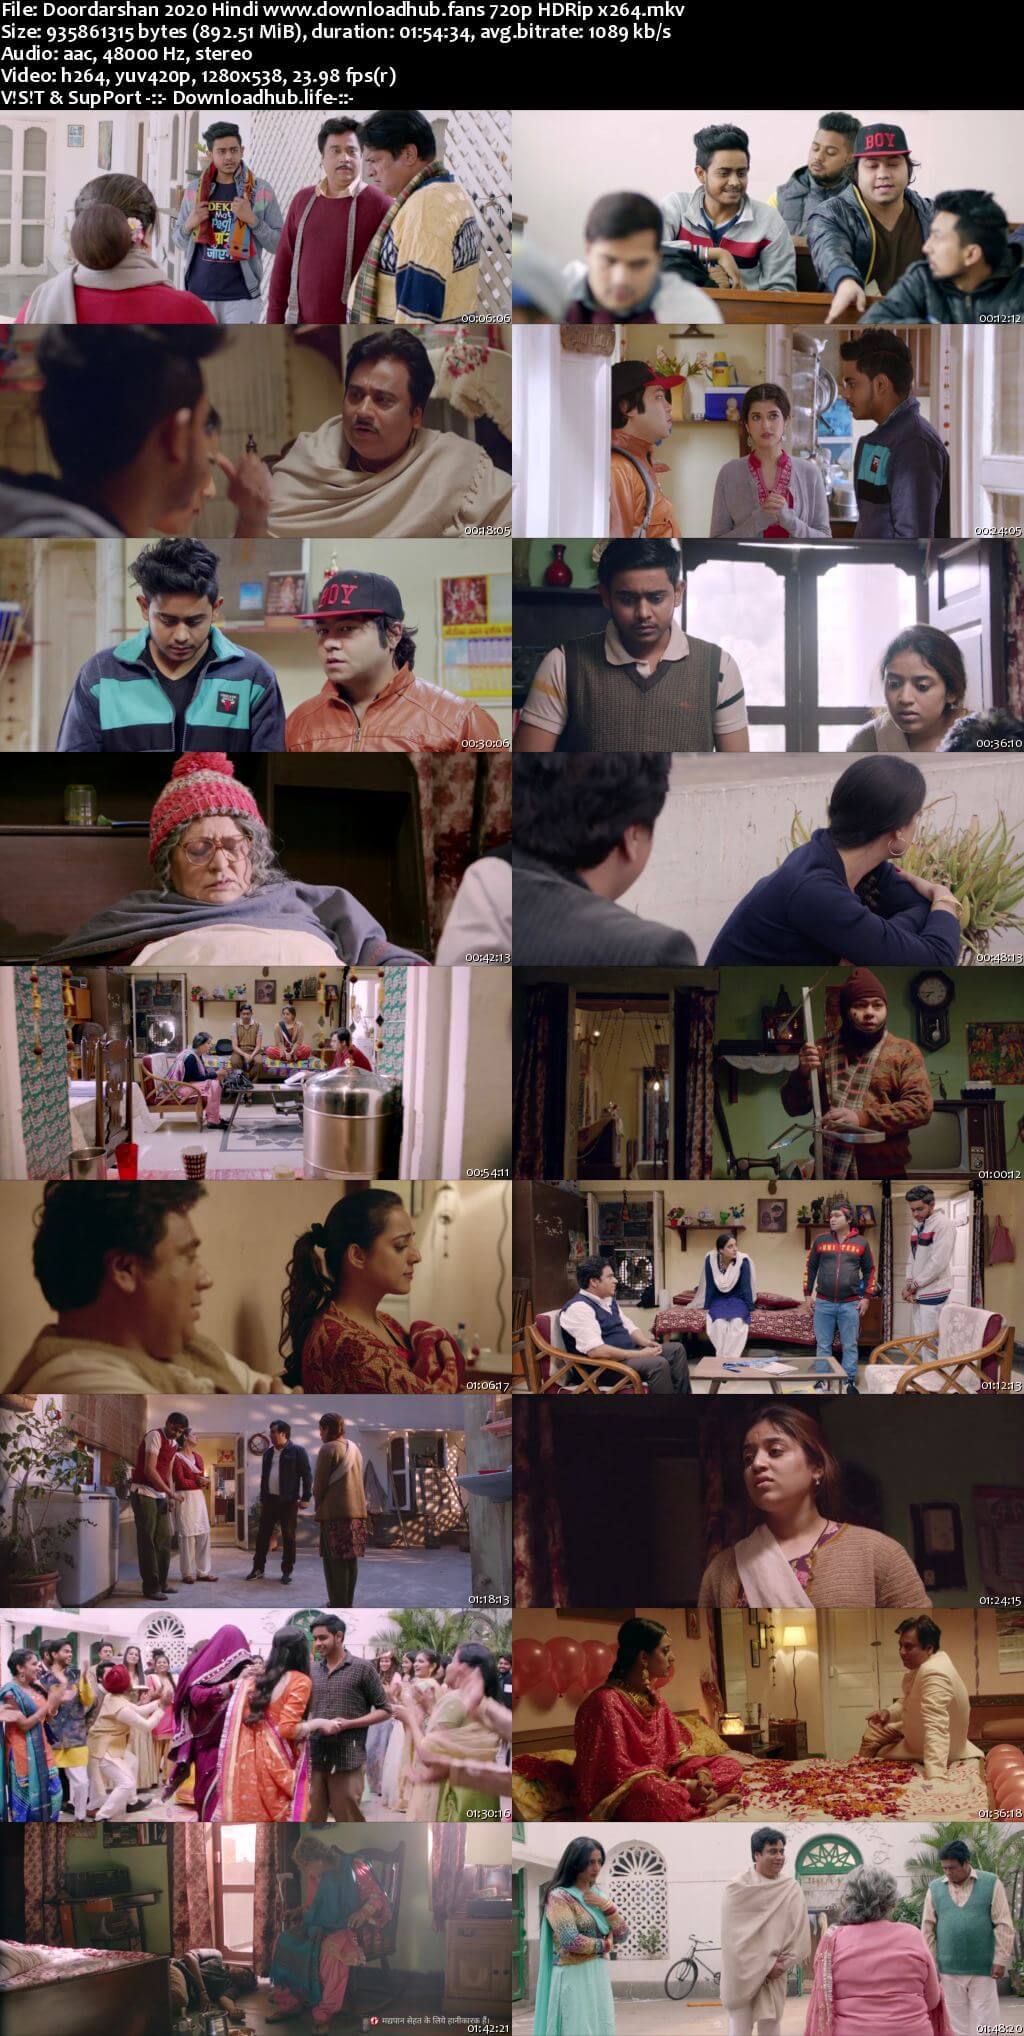 Doordarshan 2020 Hindi 720p HDRip x264